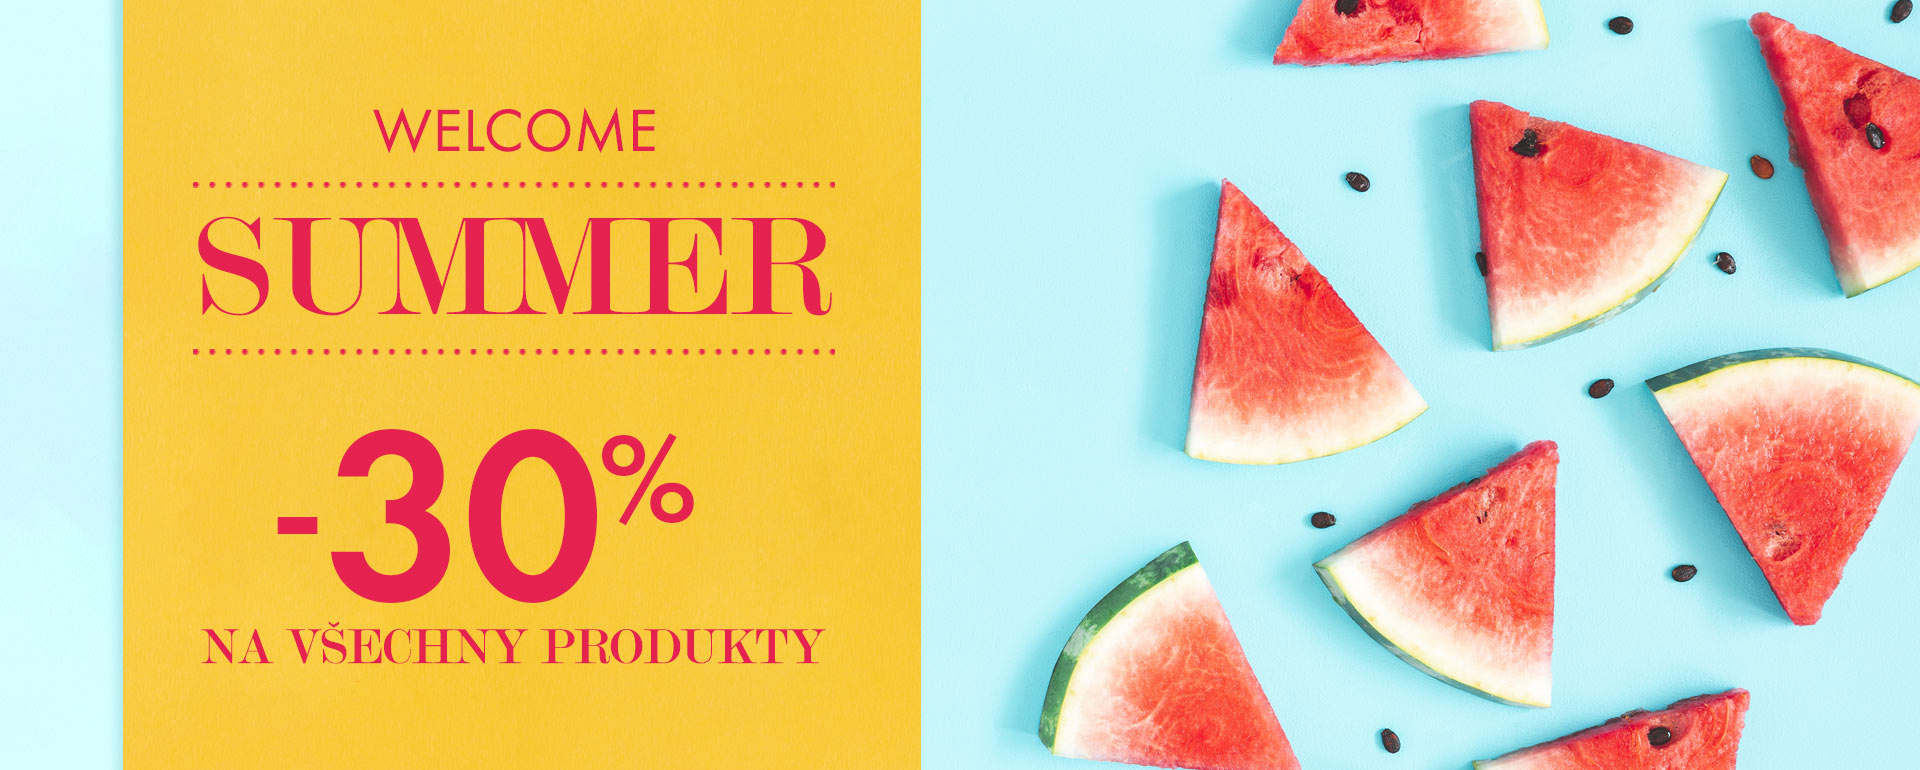 Welcome summer  - PUPA Milano